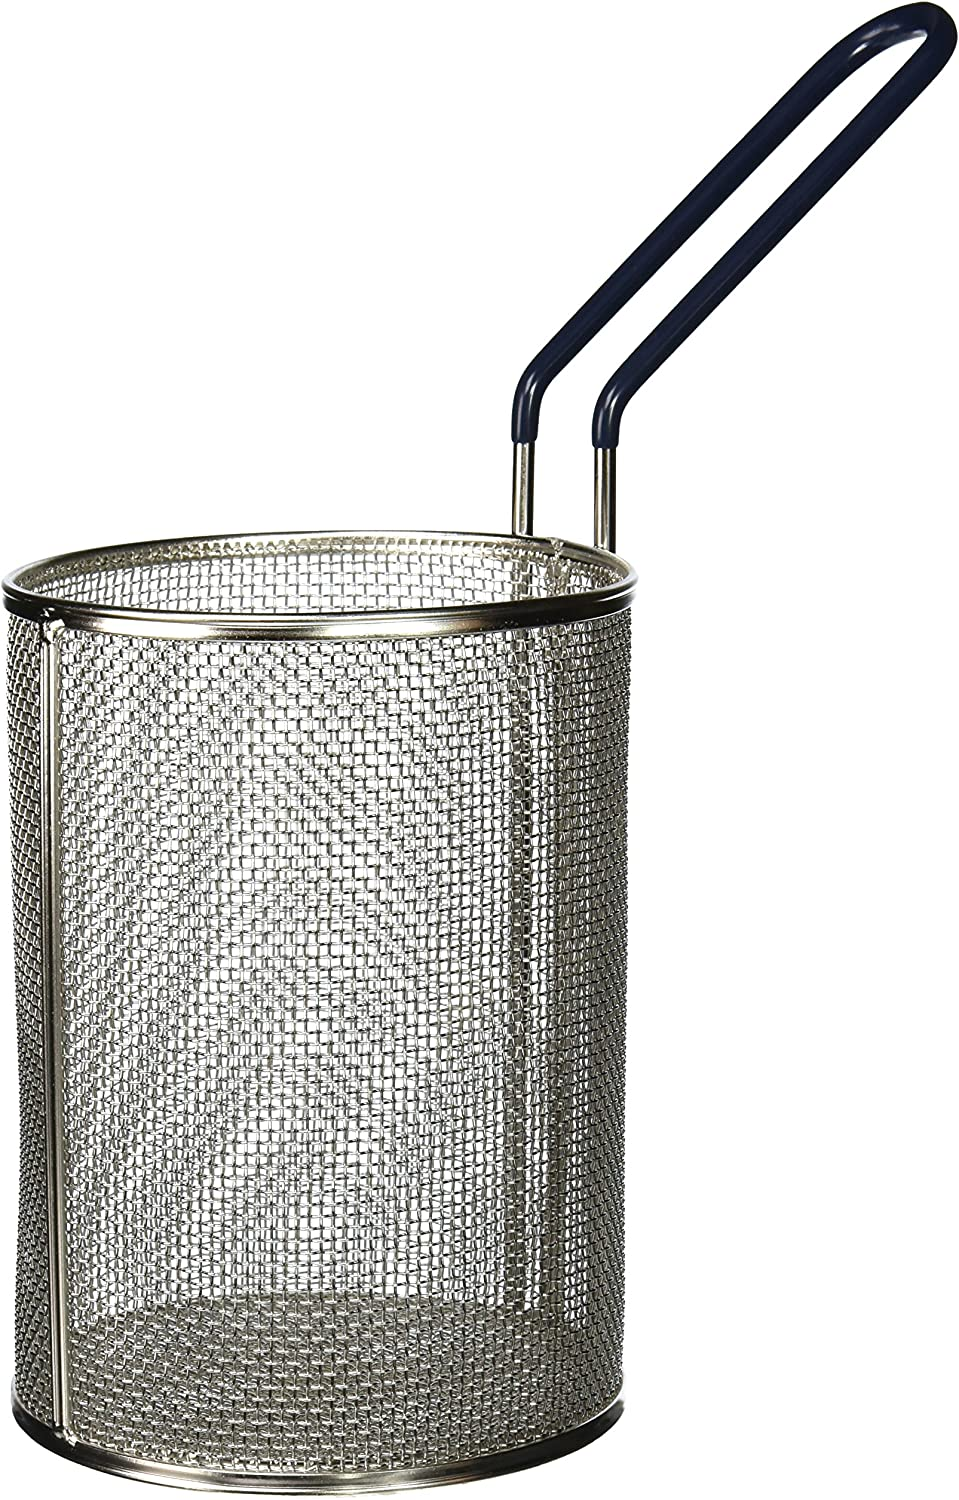 Tablecraft Minneapolis Mall Las Vegas Mall Round Pasta Basket 5-1 7-Inch Steel Stainless 4 by